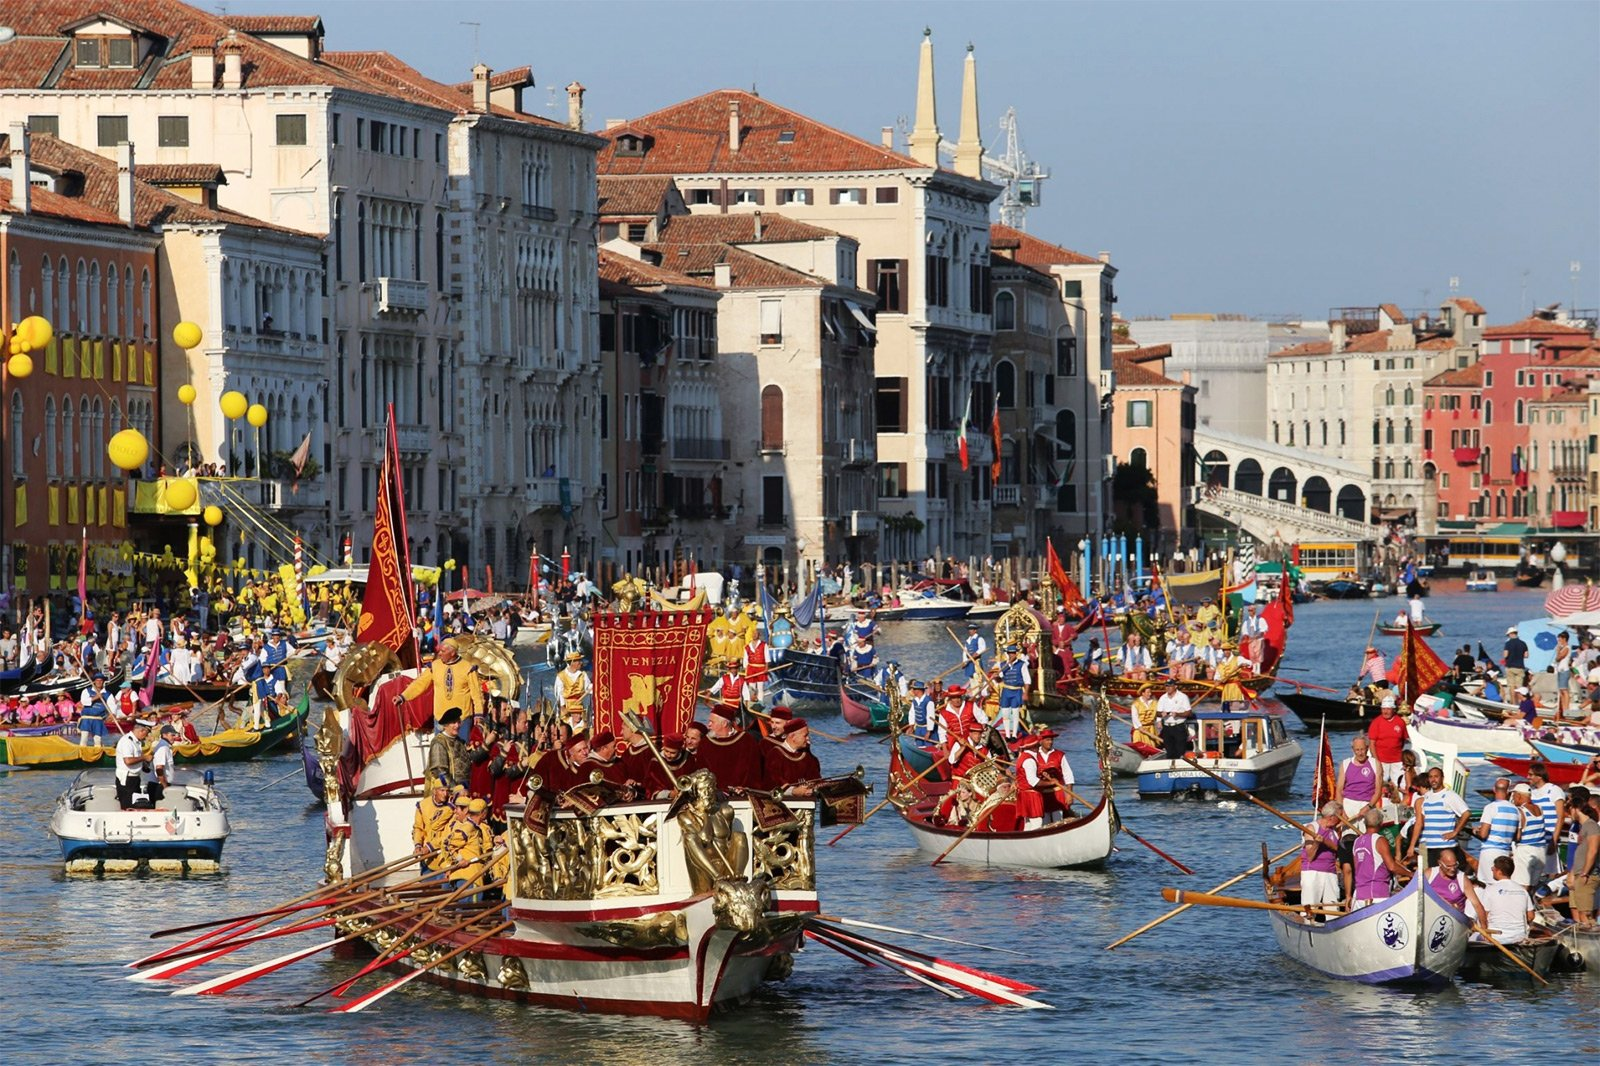 How to watch the Historical Regatta in Venice